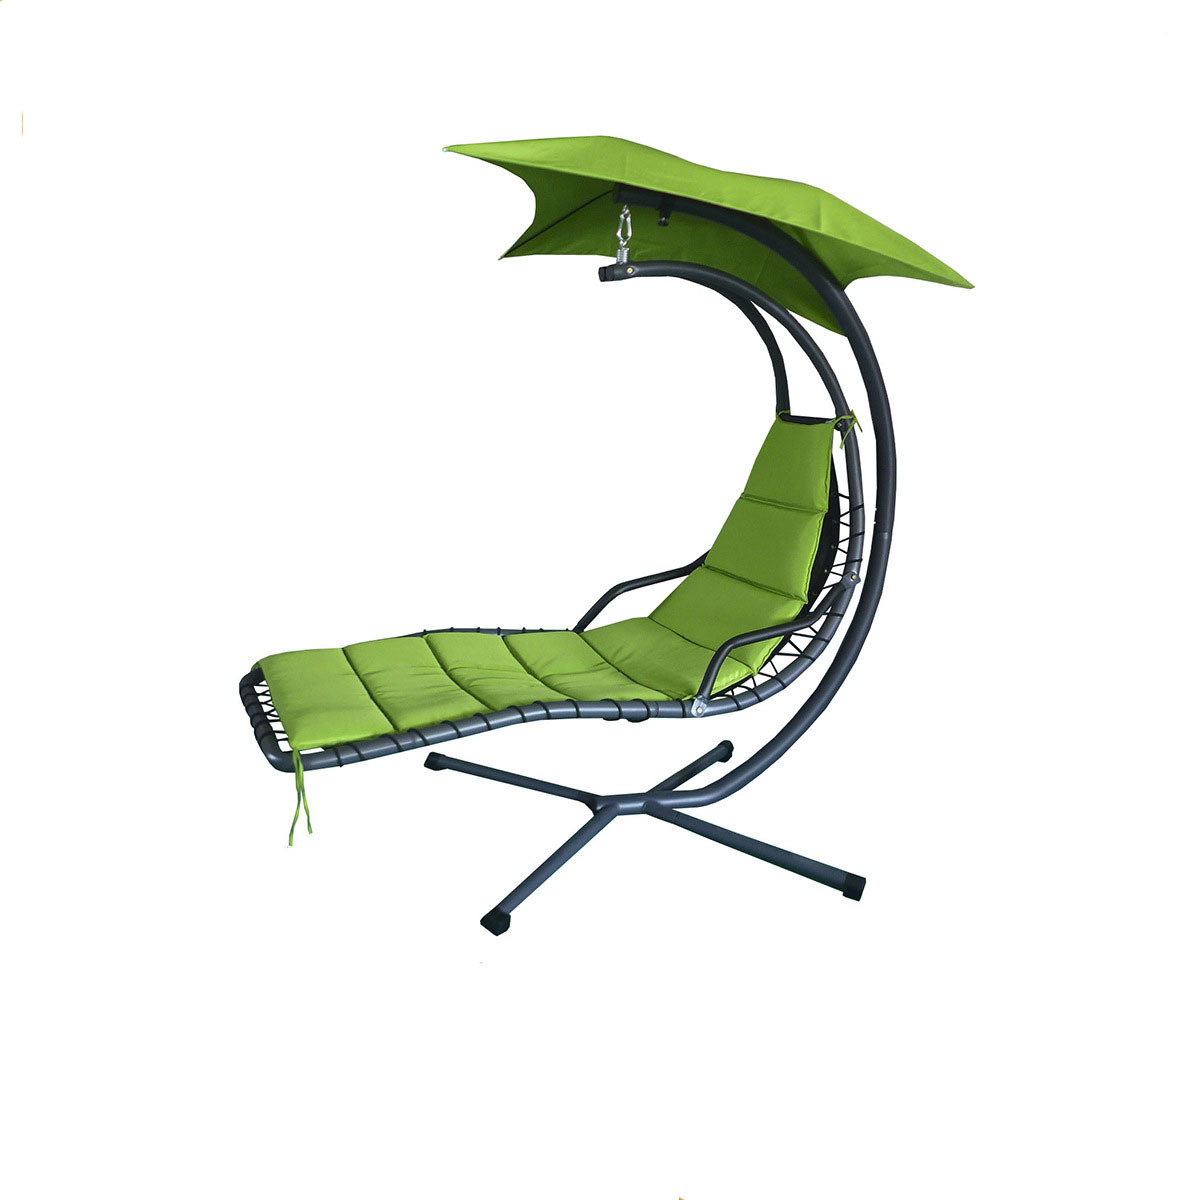 Most Recent Garden Leisure Outdoor Hammock Patio Canopy Rocking Chairs For China Outdoor Garden Leisure Hanging Patio Swing Hammock (View 5 of 25)